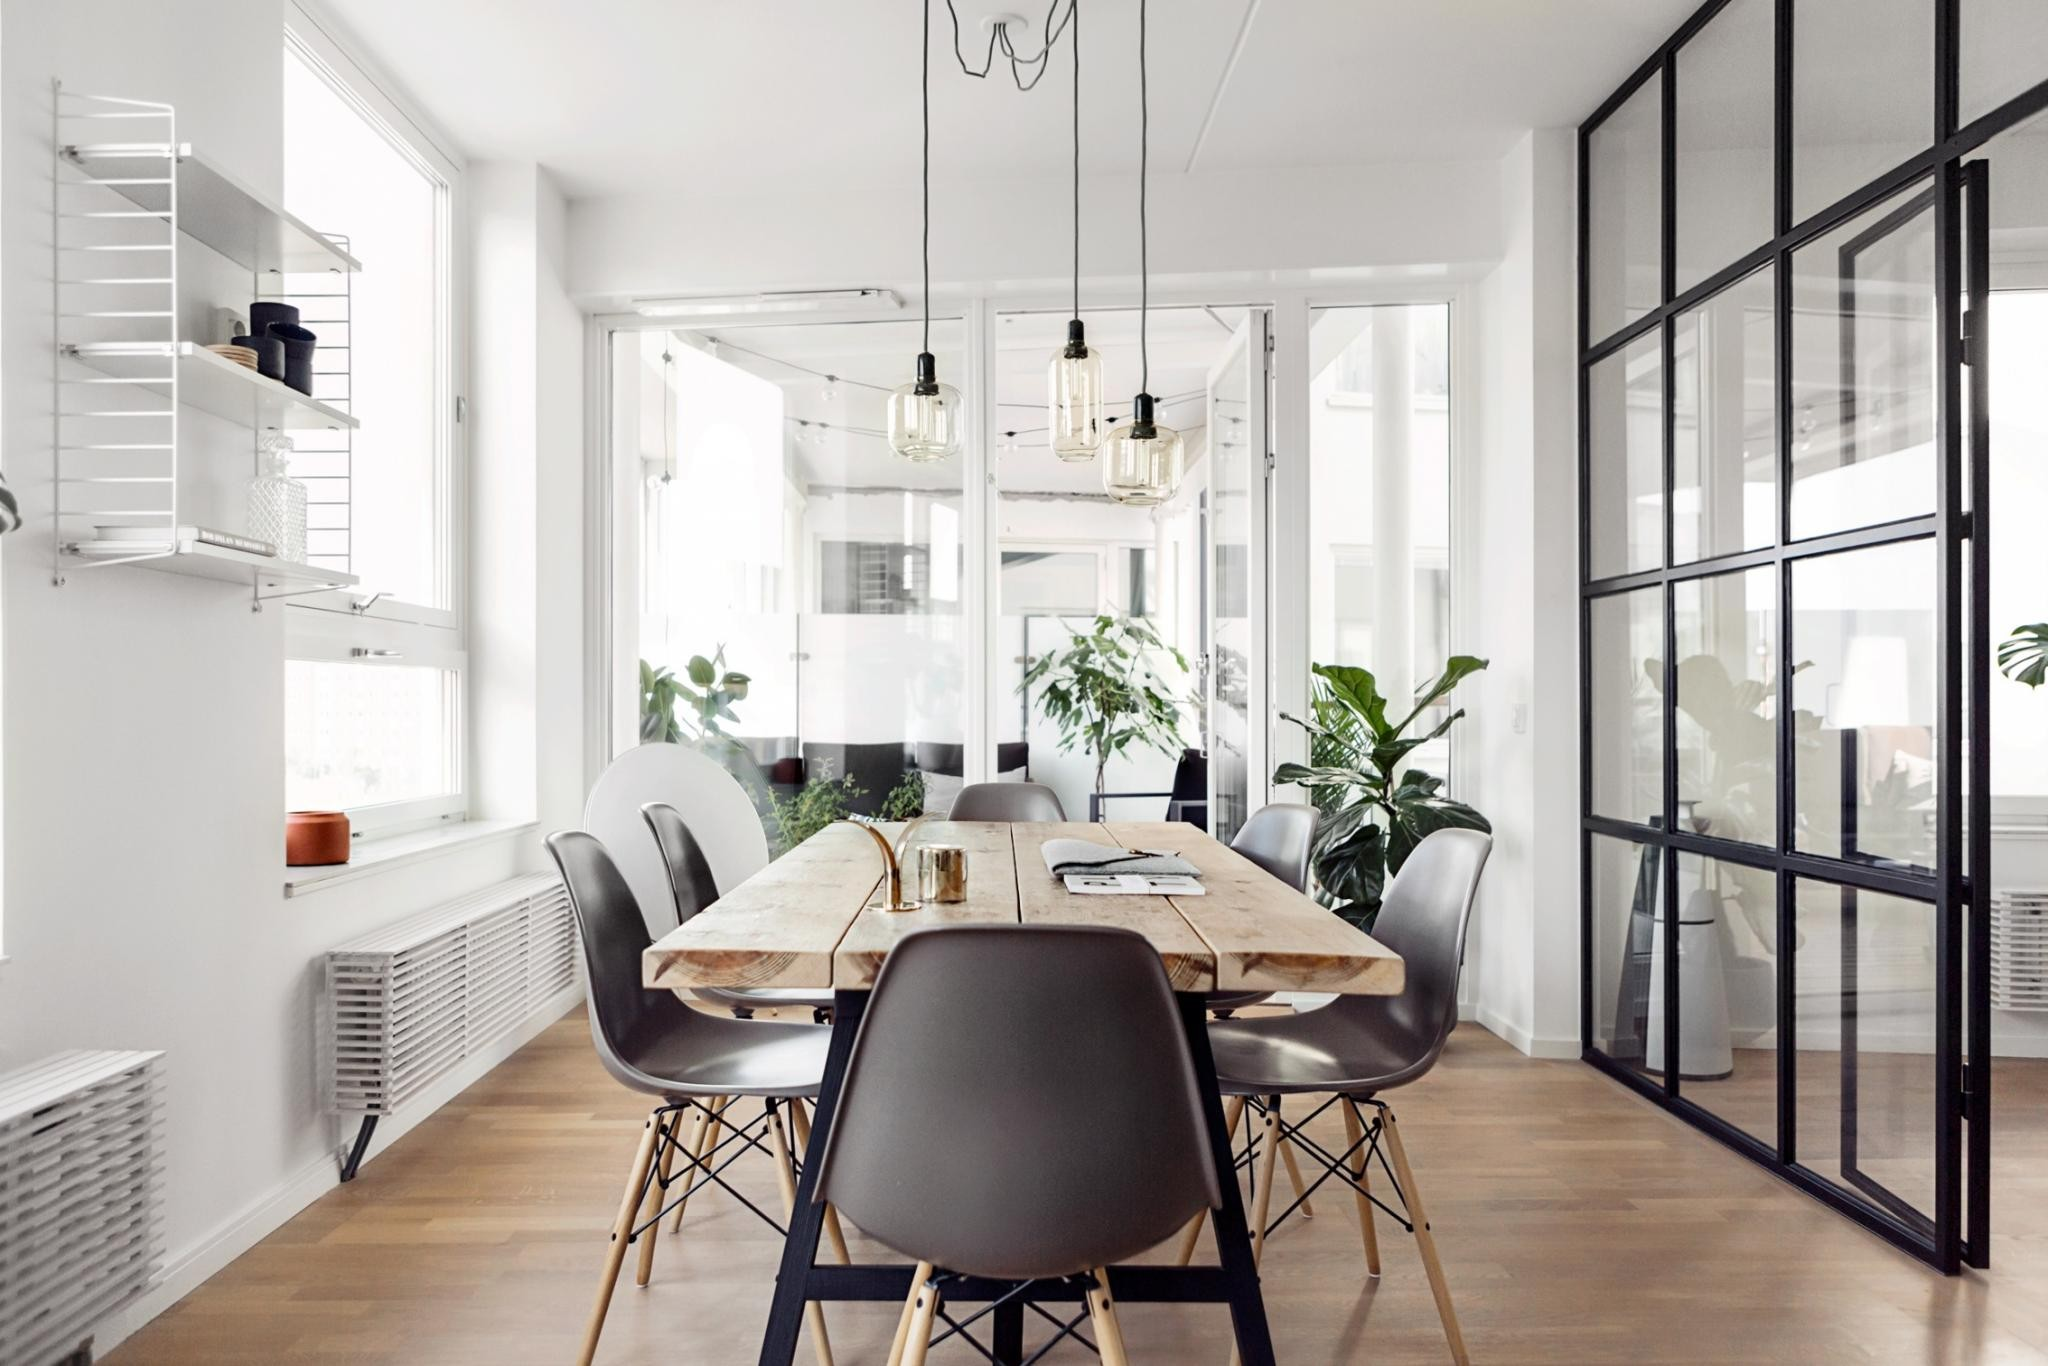 wonderful scandinavian home interior design | How To Create The Perfect Scandinavian Interior At Home